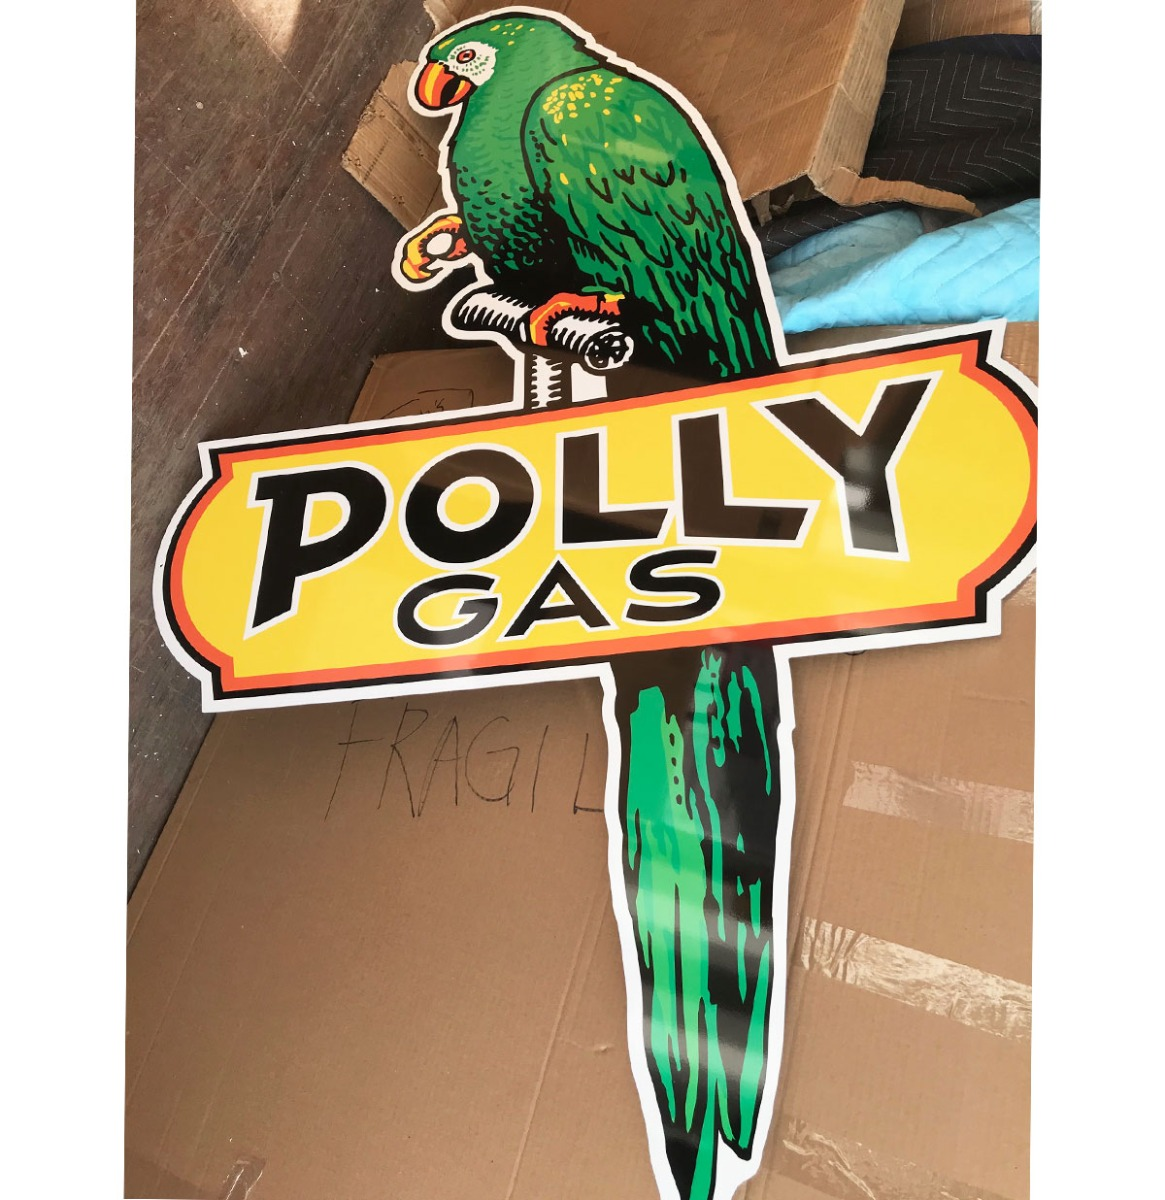 Polly Gas Groot Metalen Bord - Reproductie